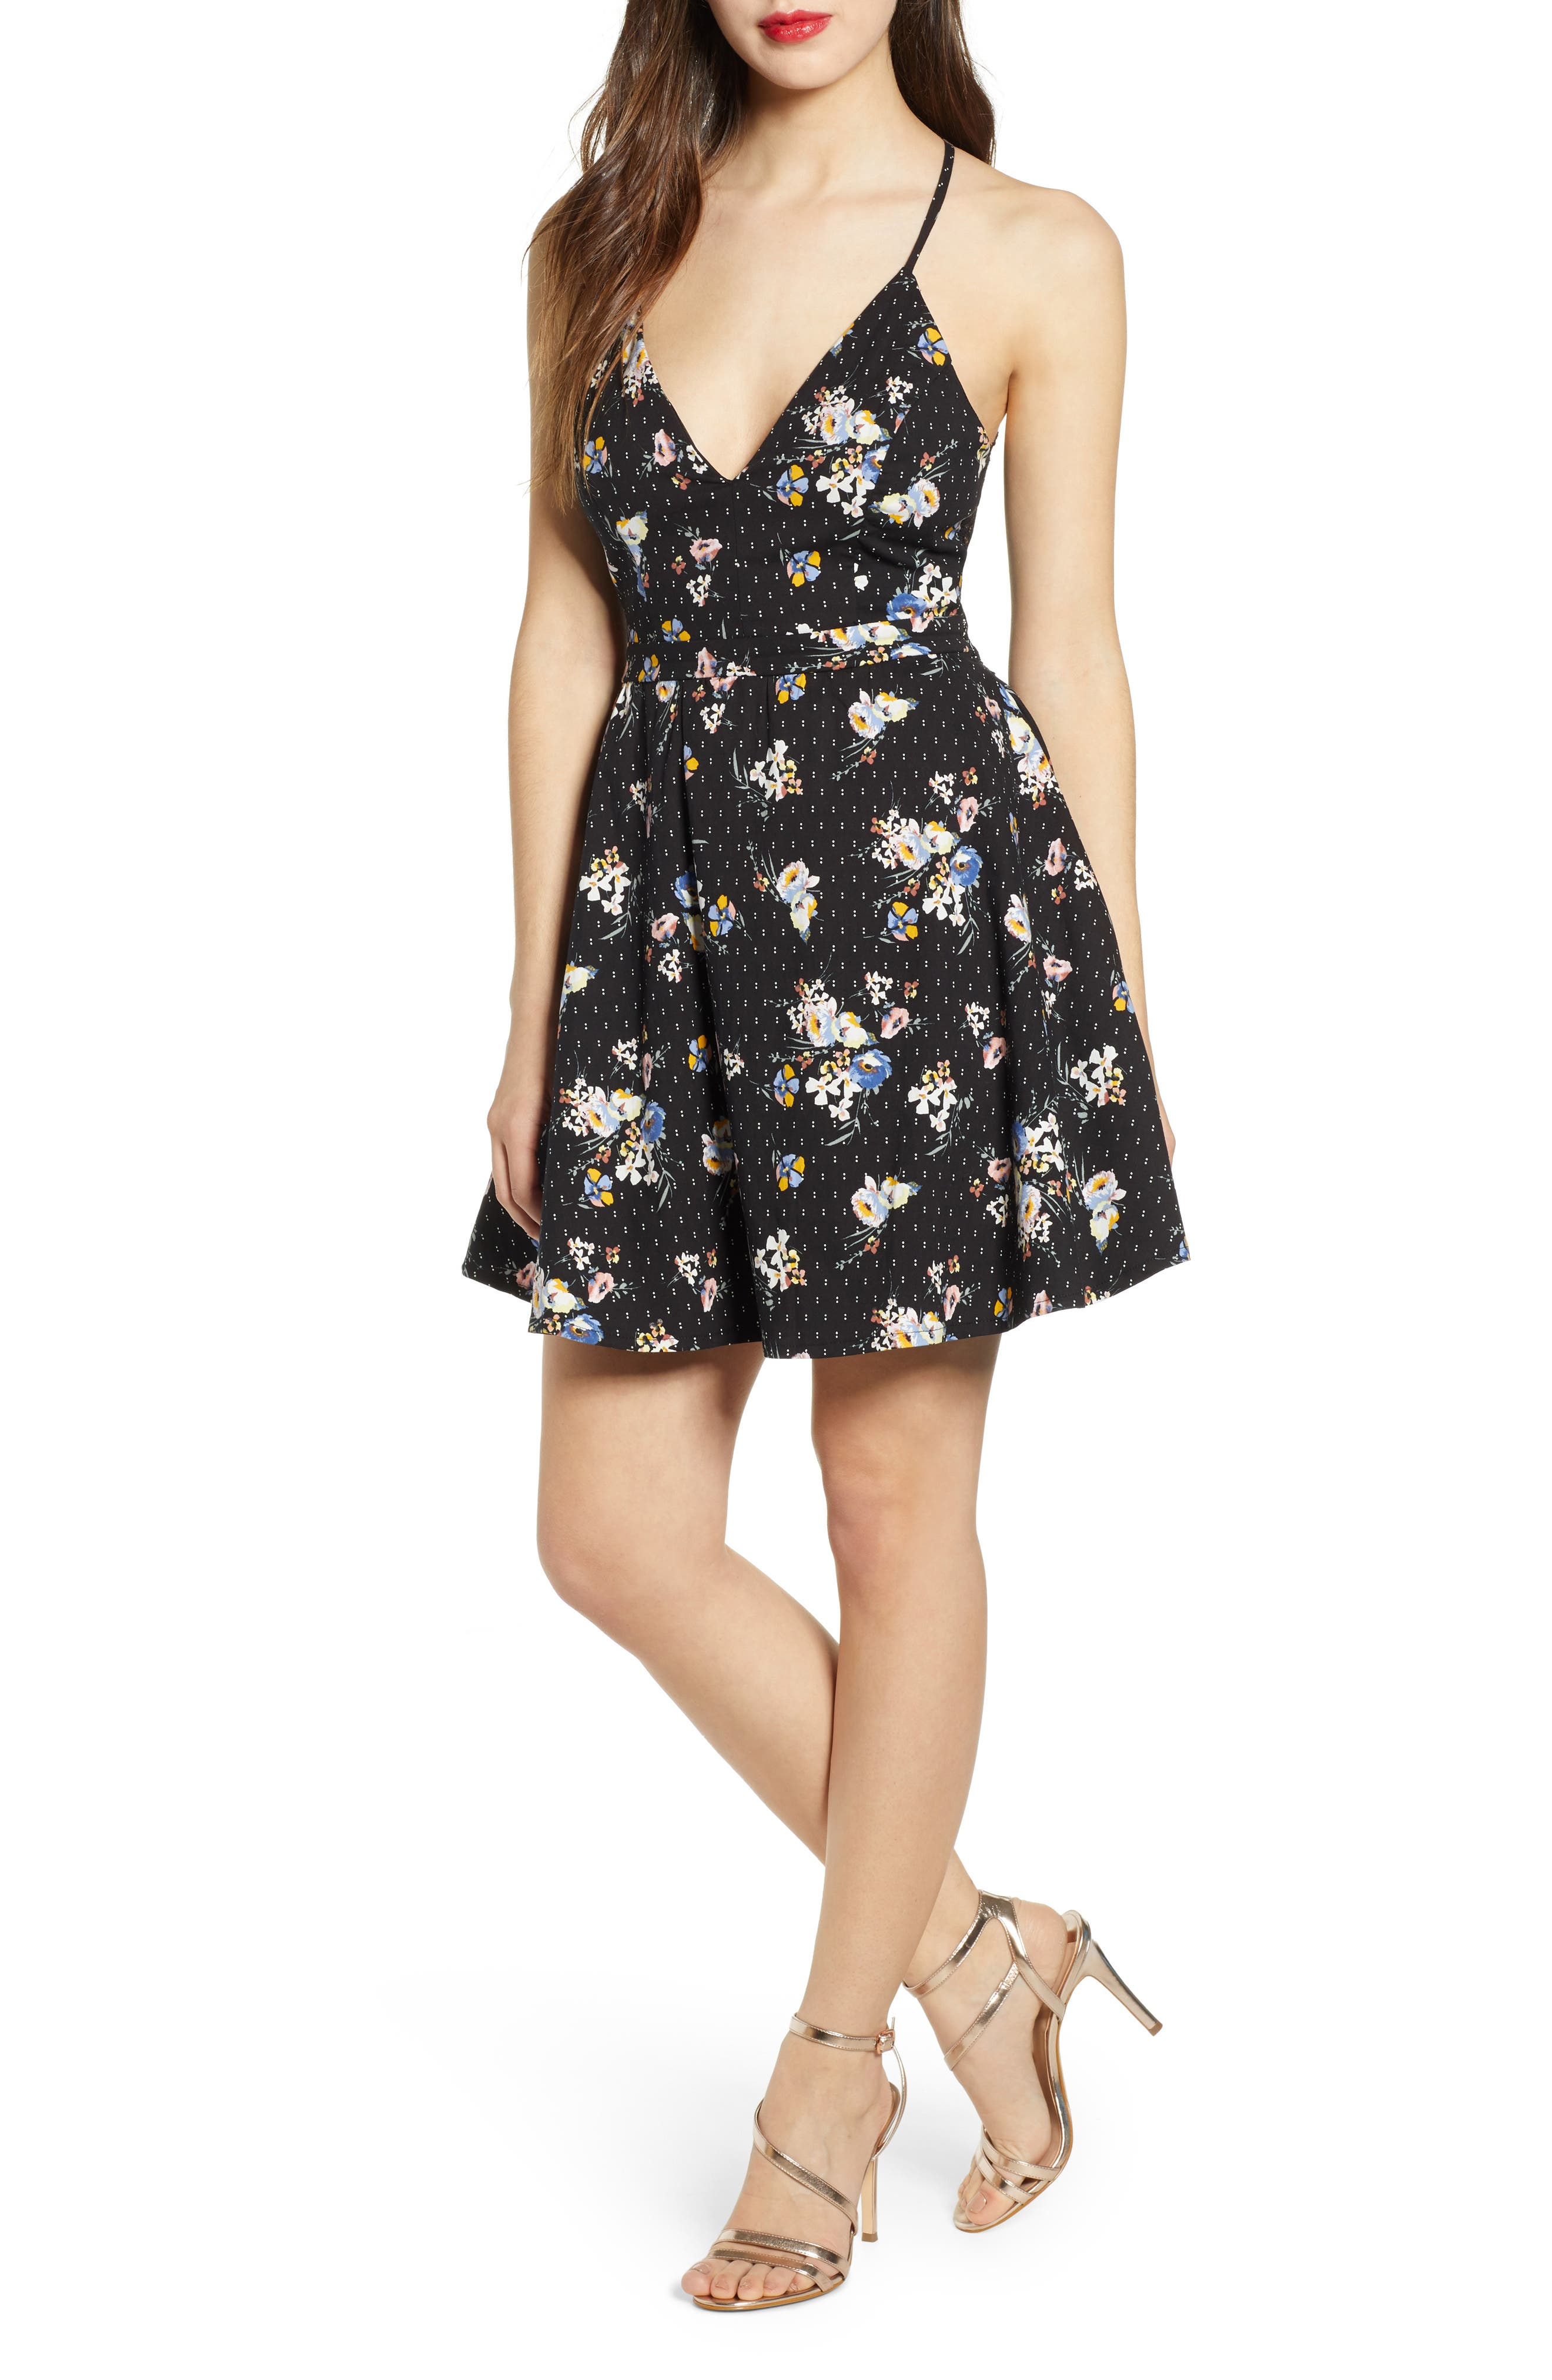 Love, Nickie Lew Floral Lace Back Detail Party Dress, Black